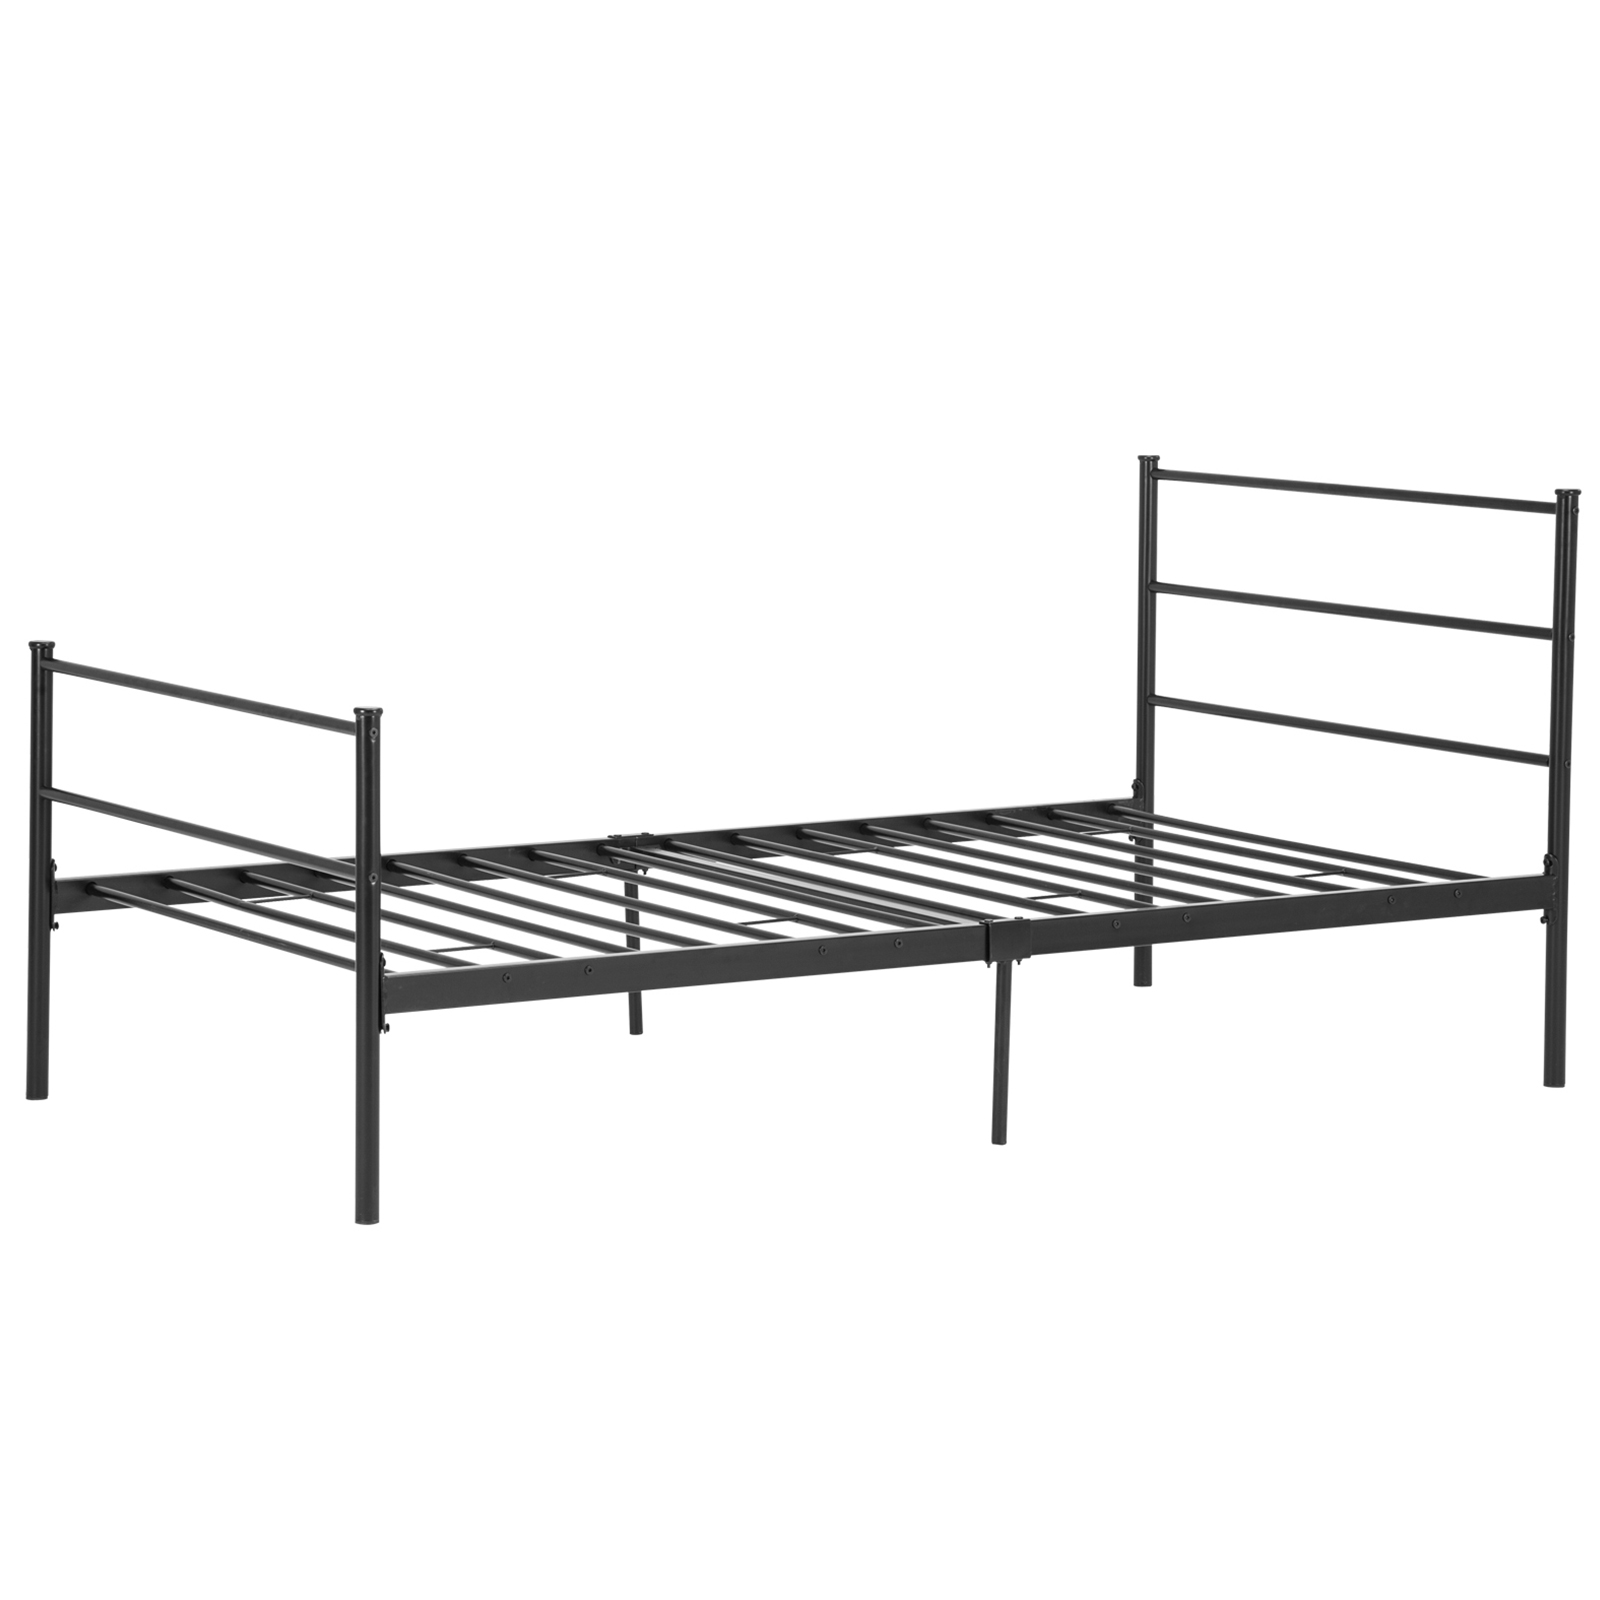 Mecor Metal Bed Frame Platform With Headboard Footboard 10 Legs Furniture Black,Multiple Sizes by Mecor